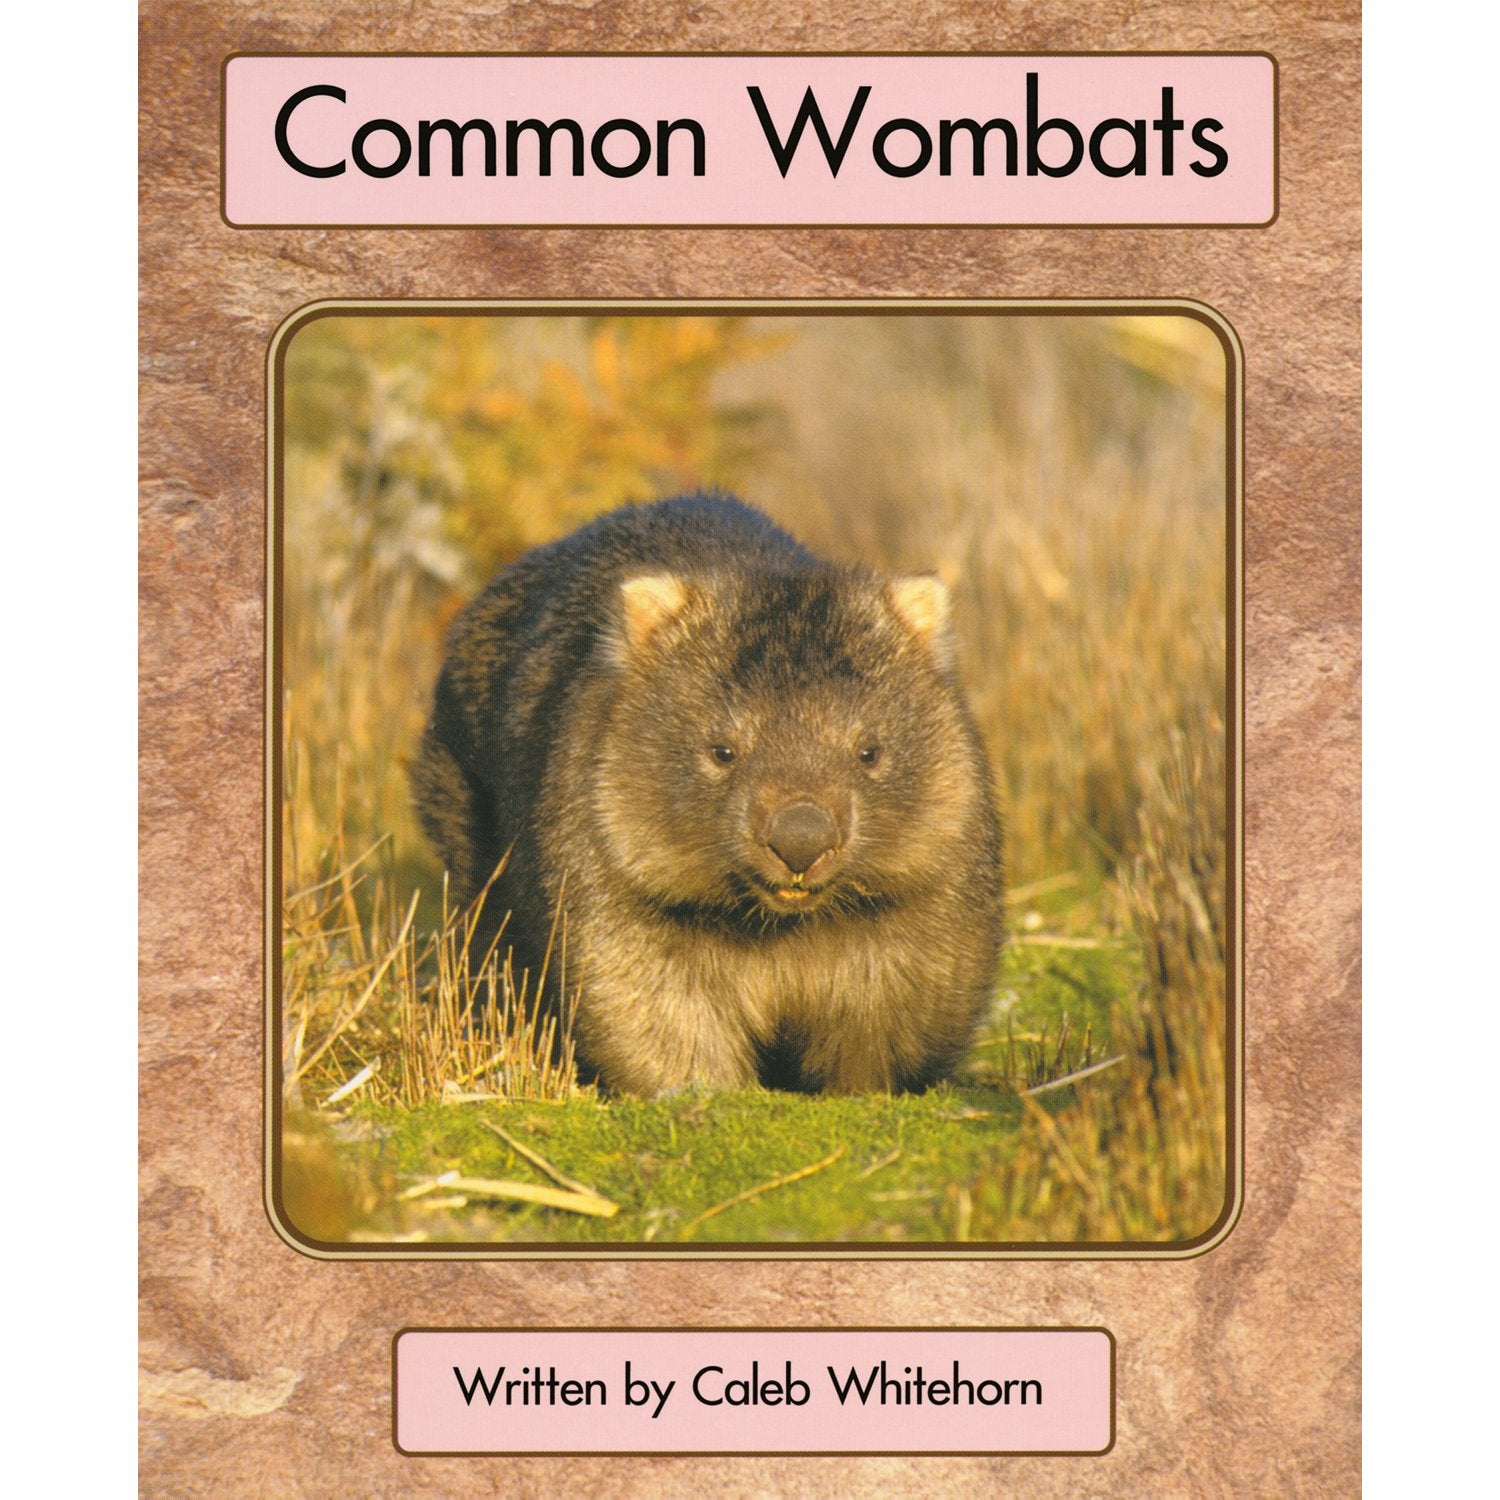 Common Wombats